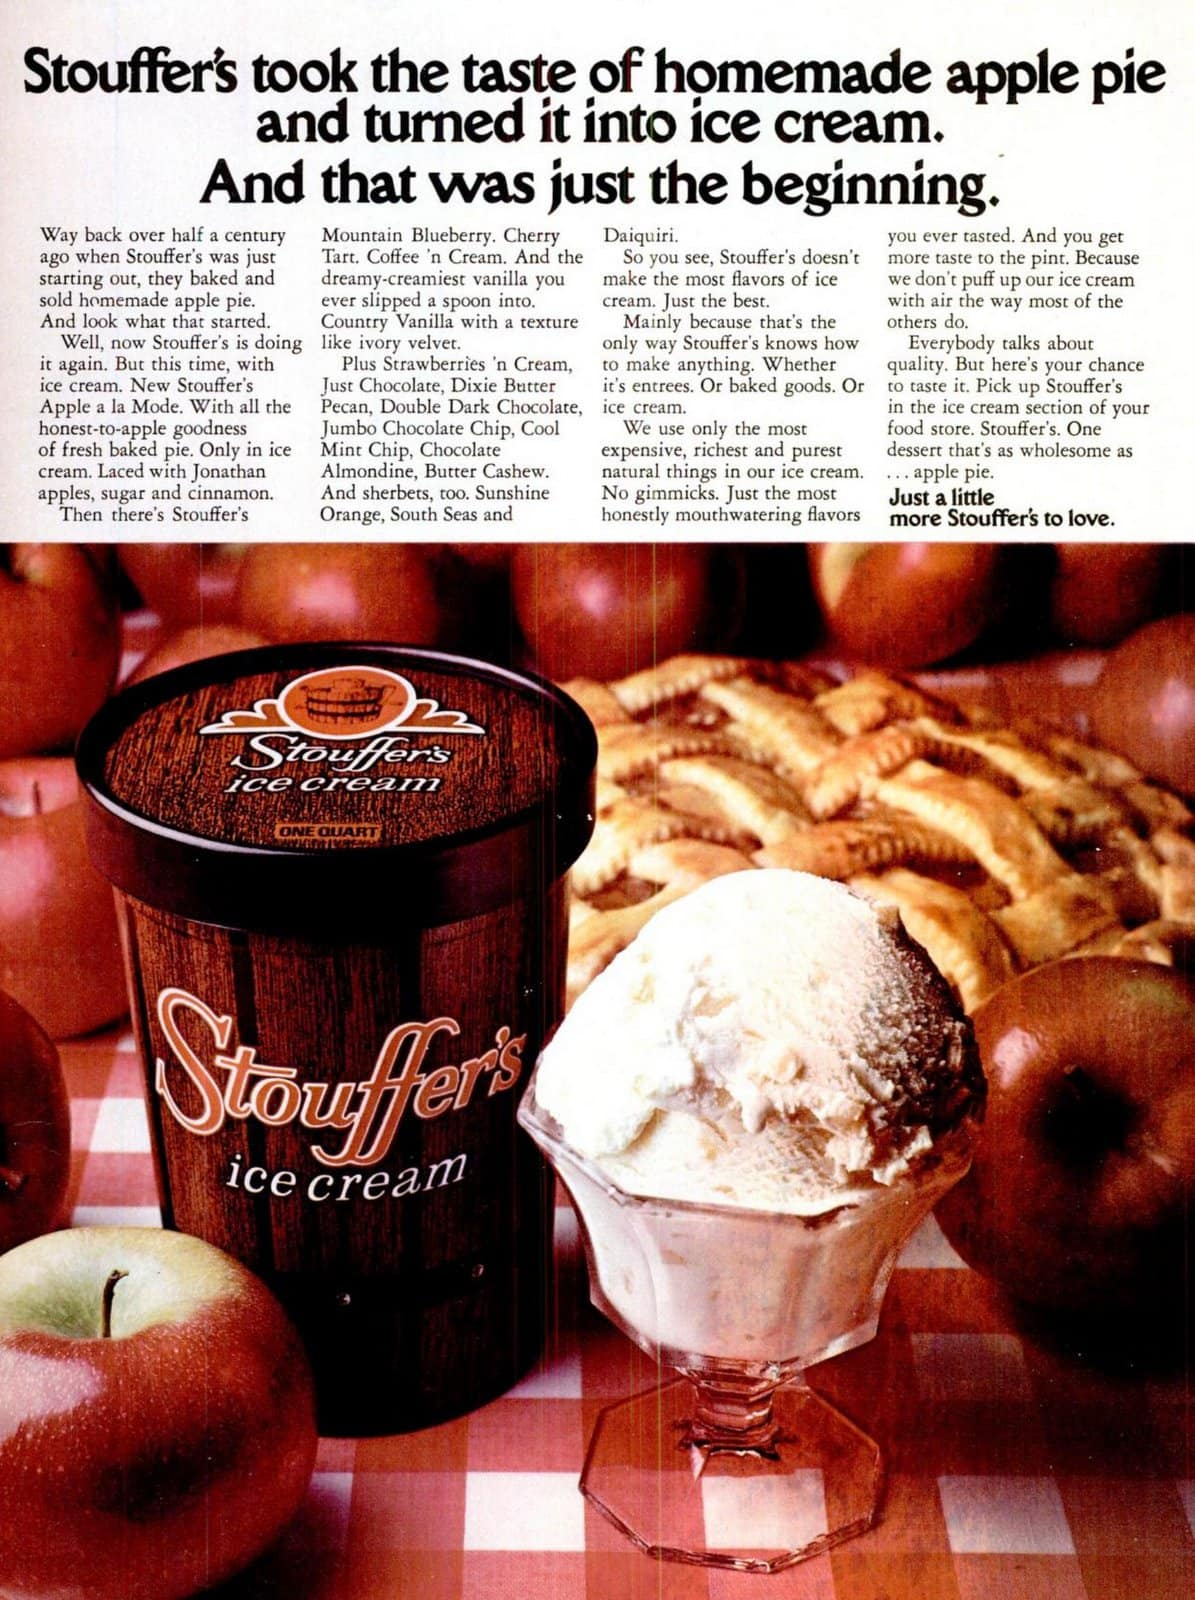 Stouffer's ice cream flavors from 1974 (2)